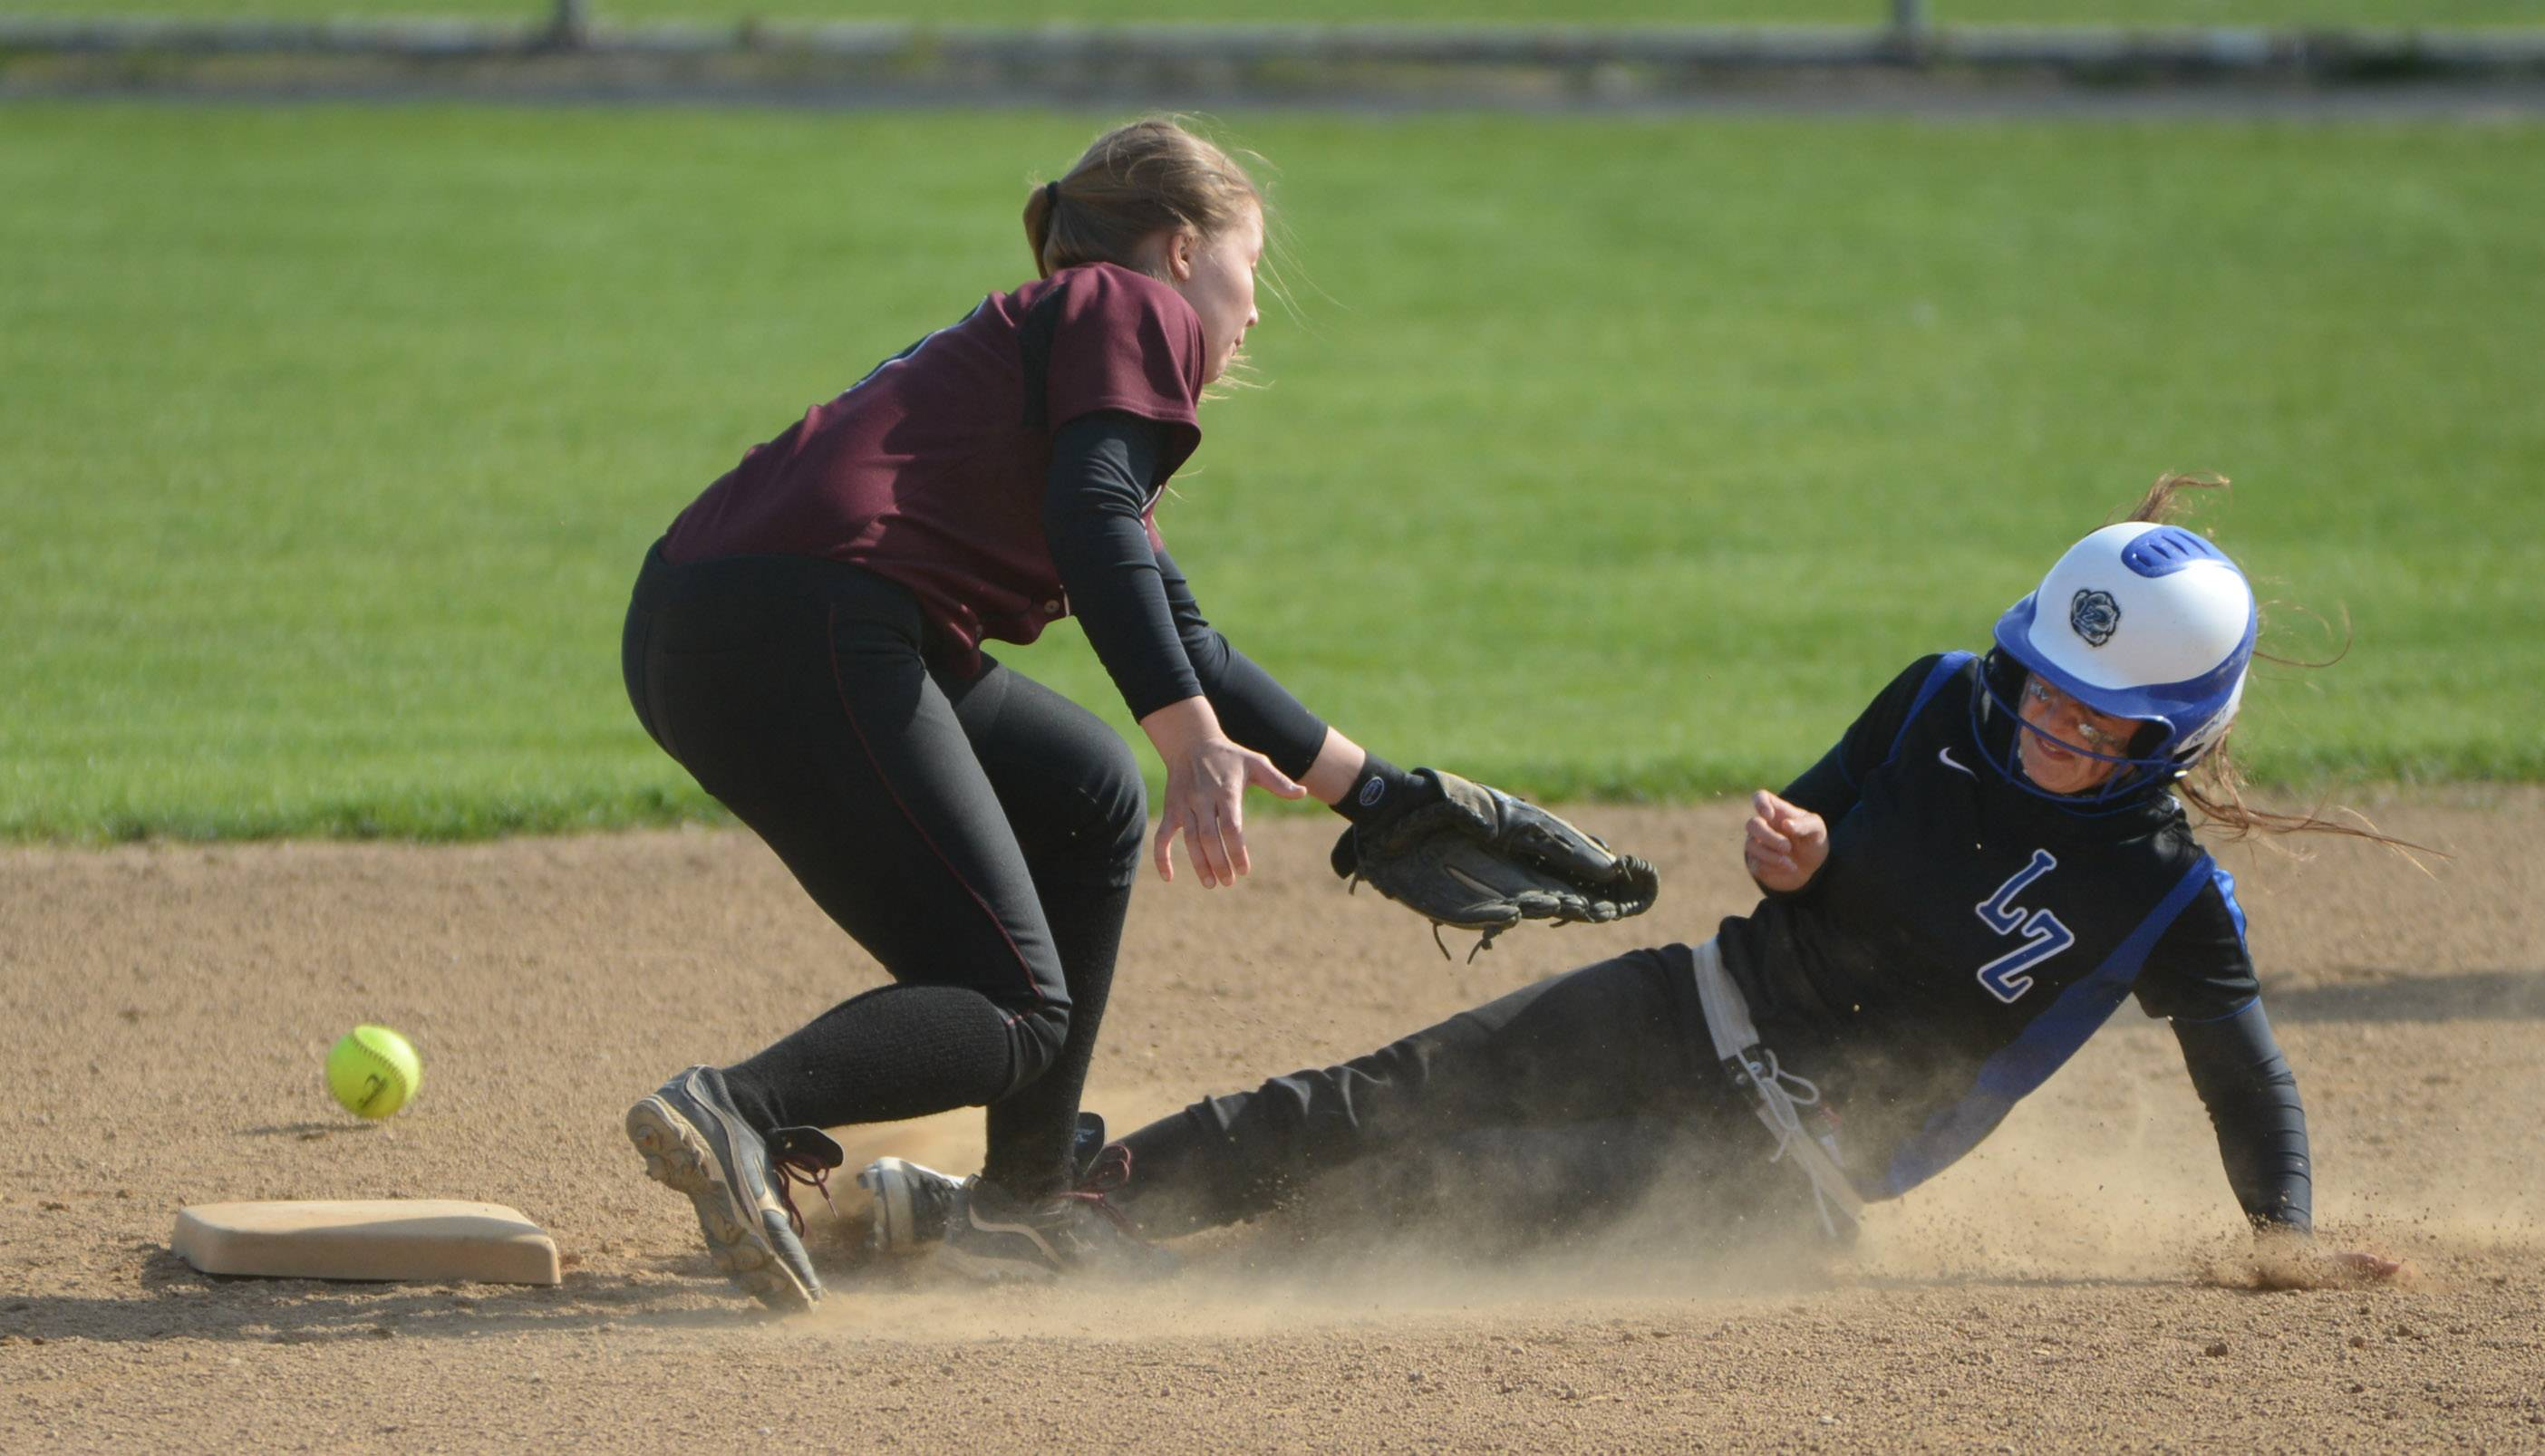 Lake Zurich's Maddie Minneci, right, slides safely into second base on an overthrow to Zion-Benton's Janie Torola Monday in Lake Zurich.